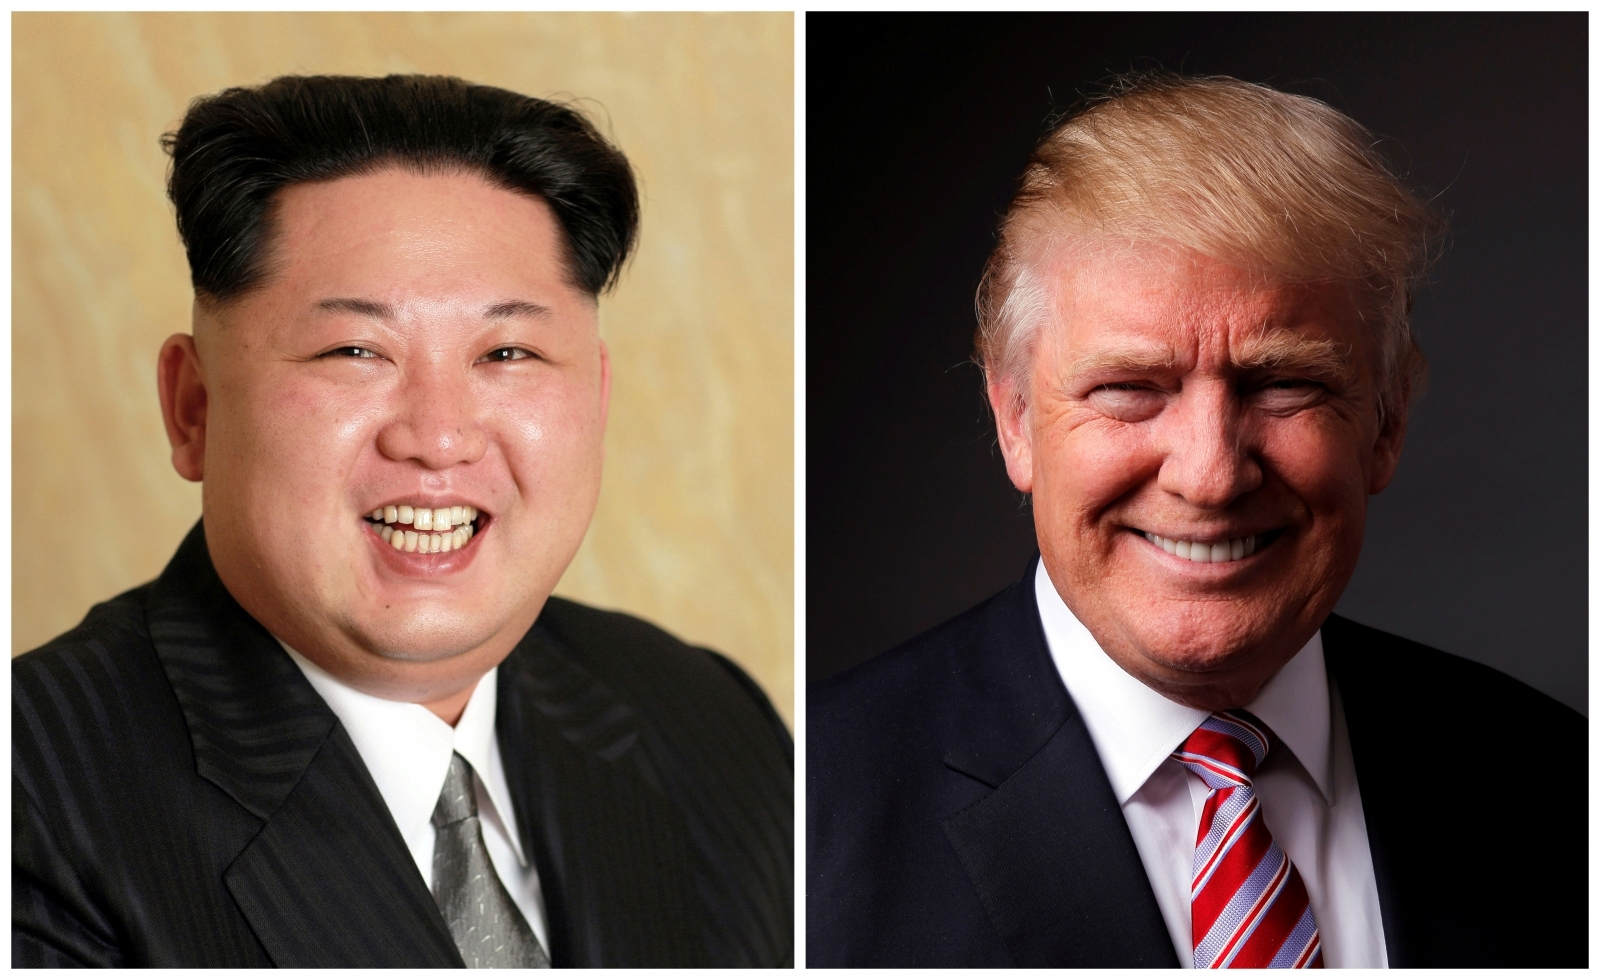 North Korea calls Donald Trump 'senile' and his warnings a 'load of nonsense'